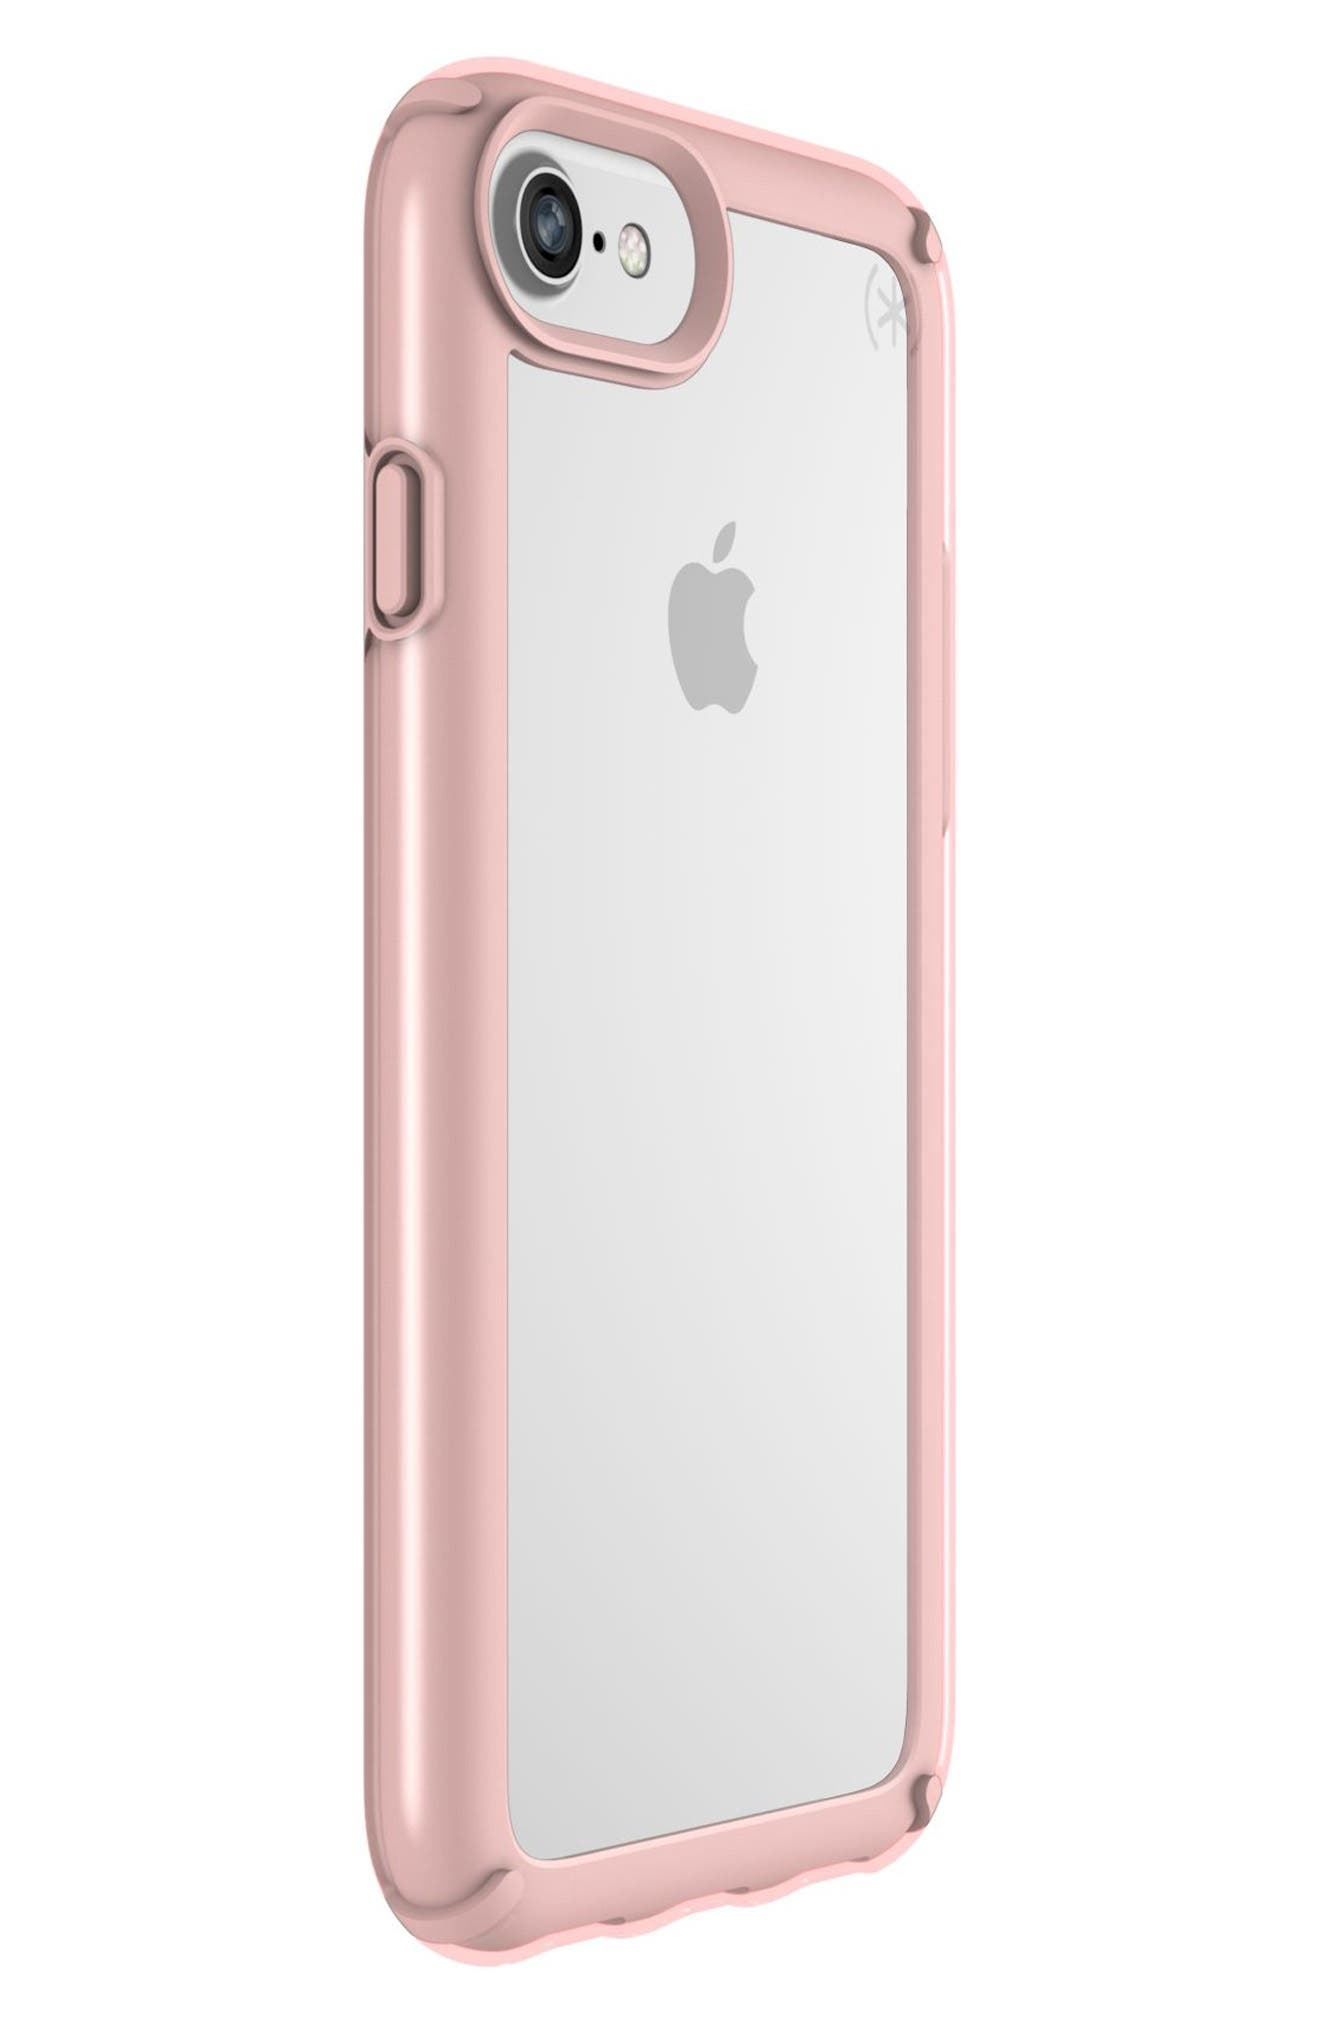 Transparent iPhone 6/6s/7/8 Case,                             Alternate thumbnail 2, color,                             Clear/ Rose Gold